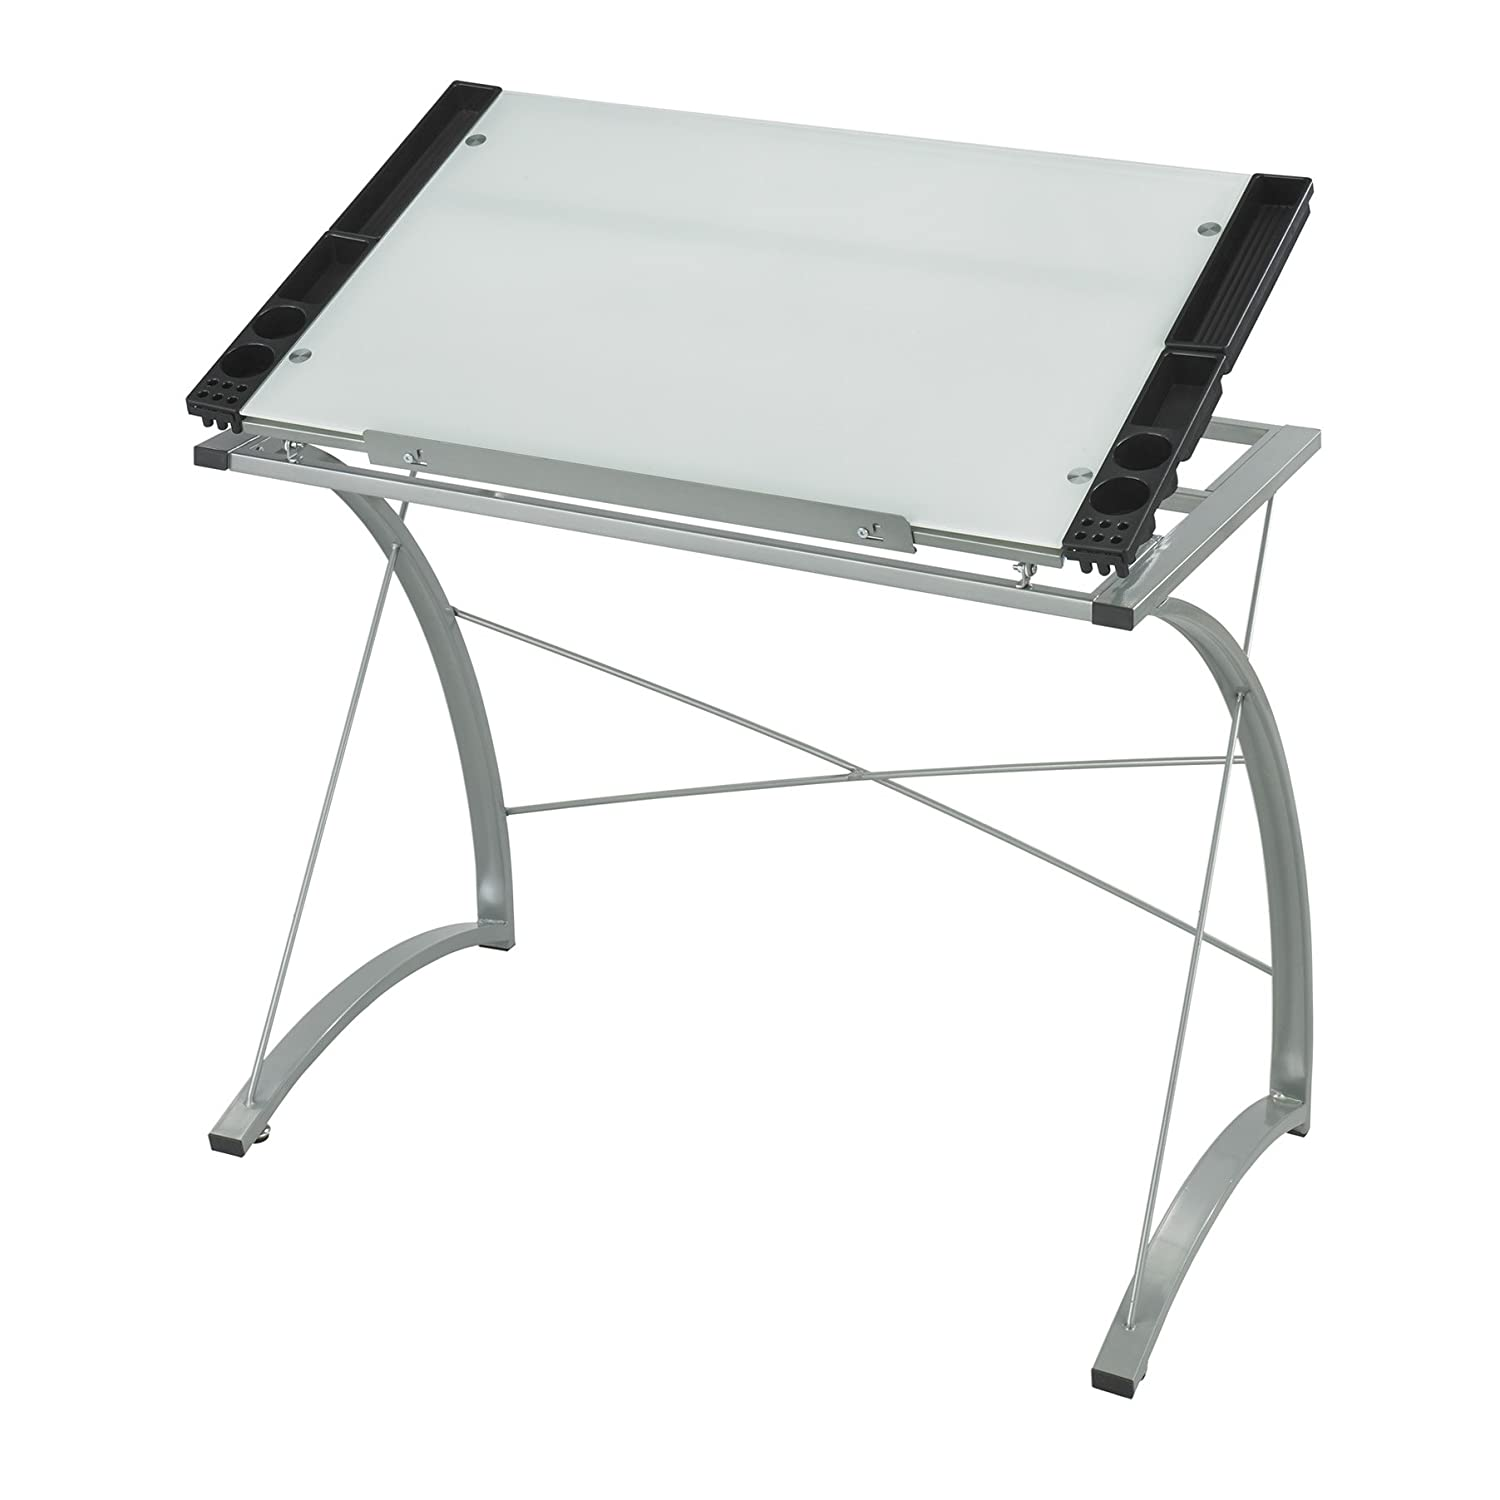 Safco Products 3966TG Xpressions Glass Top Drafting Table - Metallic Gray Frame